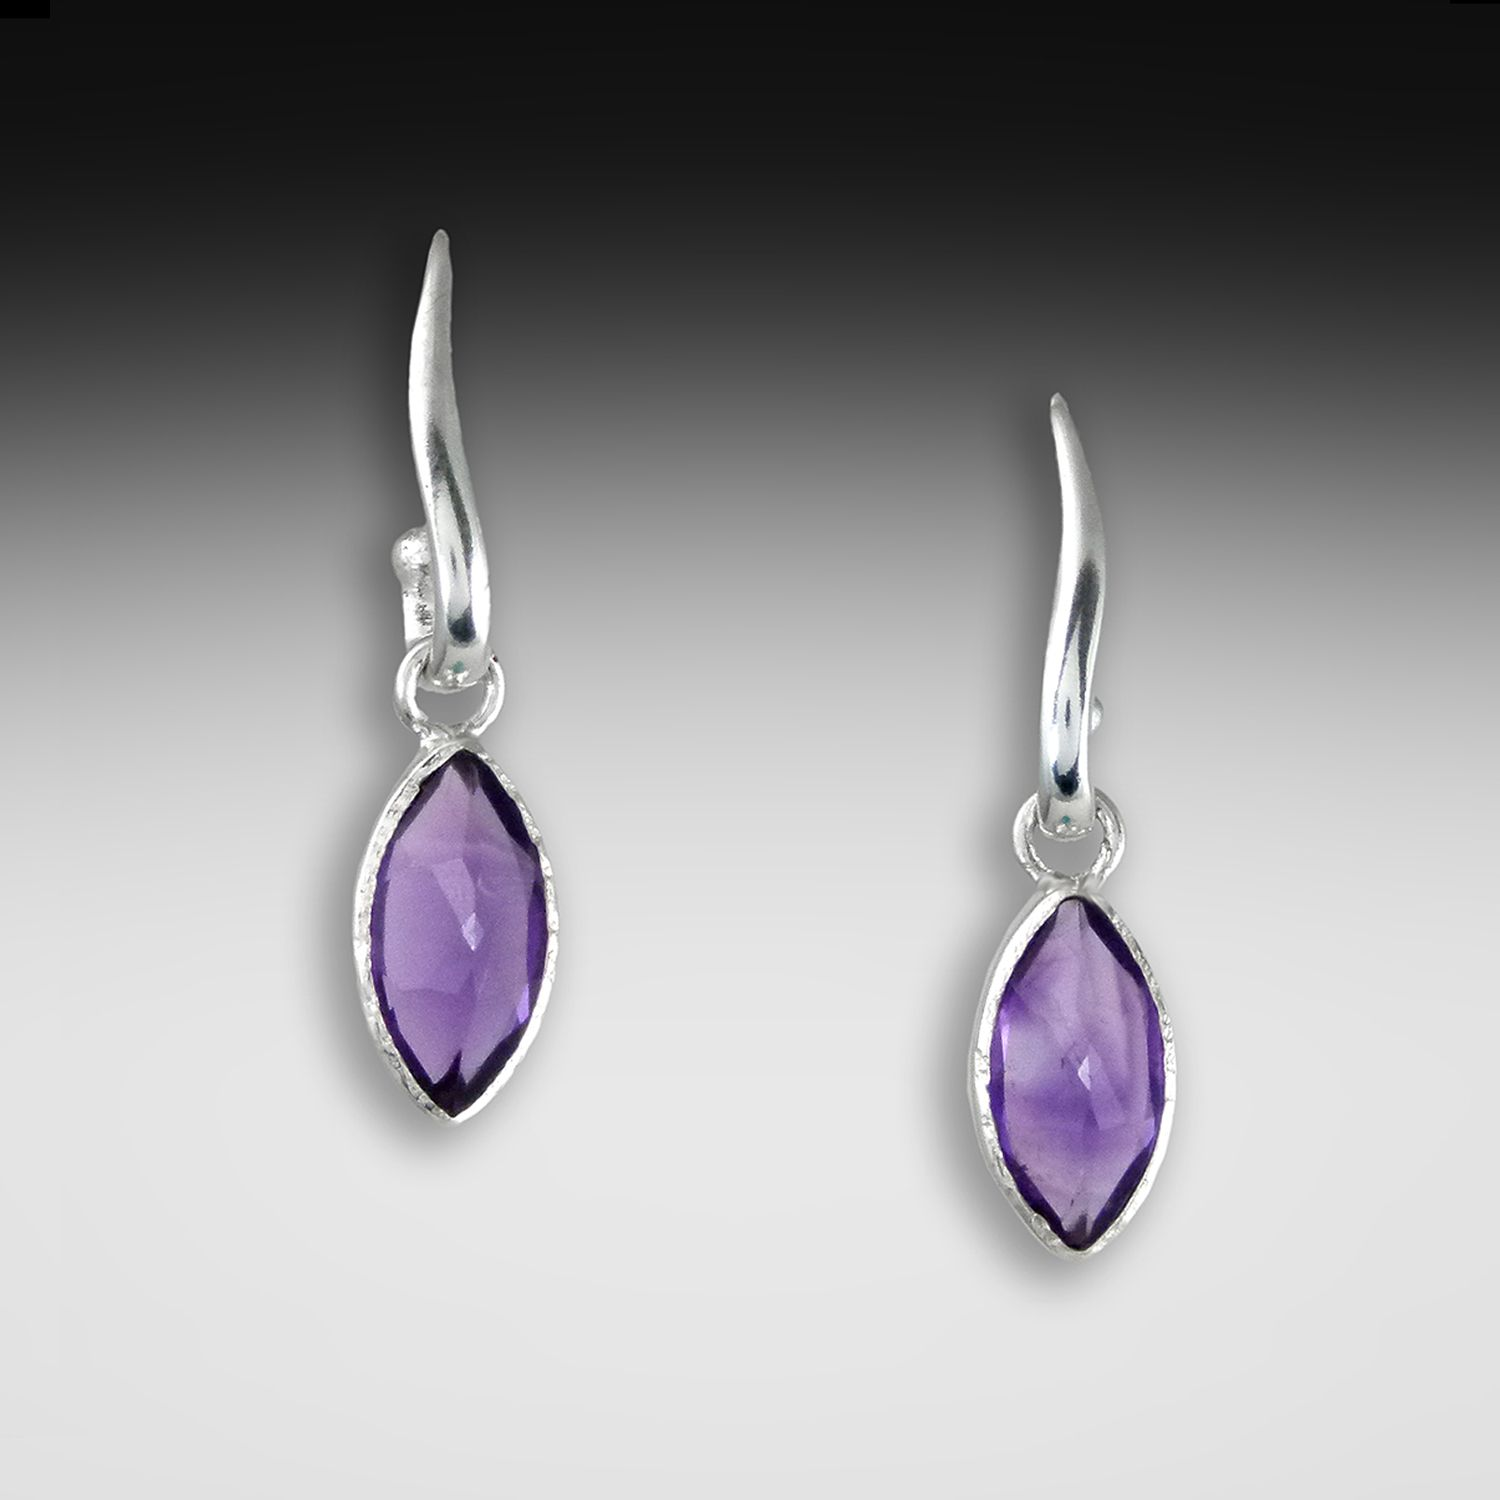 Wavy Post Earrings with Amethyst by Q Evon. American Made. See the designer's work at the 2015 American Made Show, Washington DC. January 16-19, 2015. americanmadeshow.com #earrings, #jewelry, #amethyst, #purple, #sterlingsilver, #americanmade